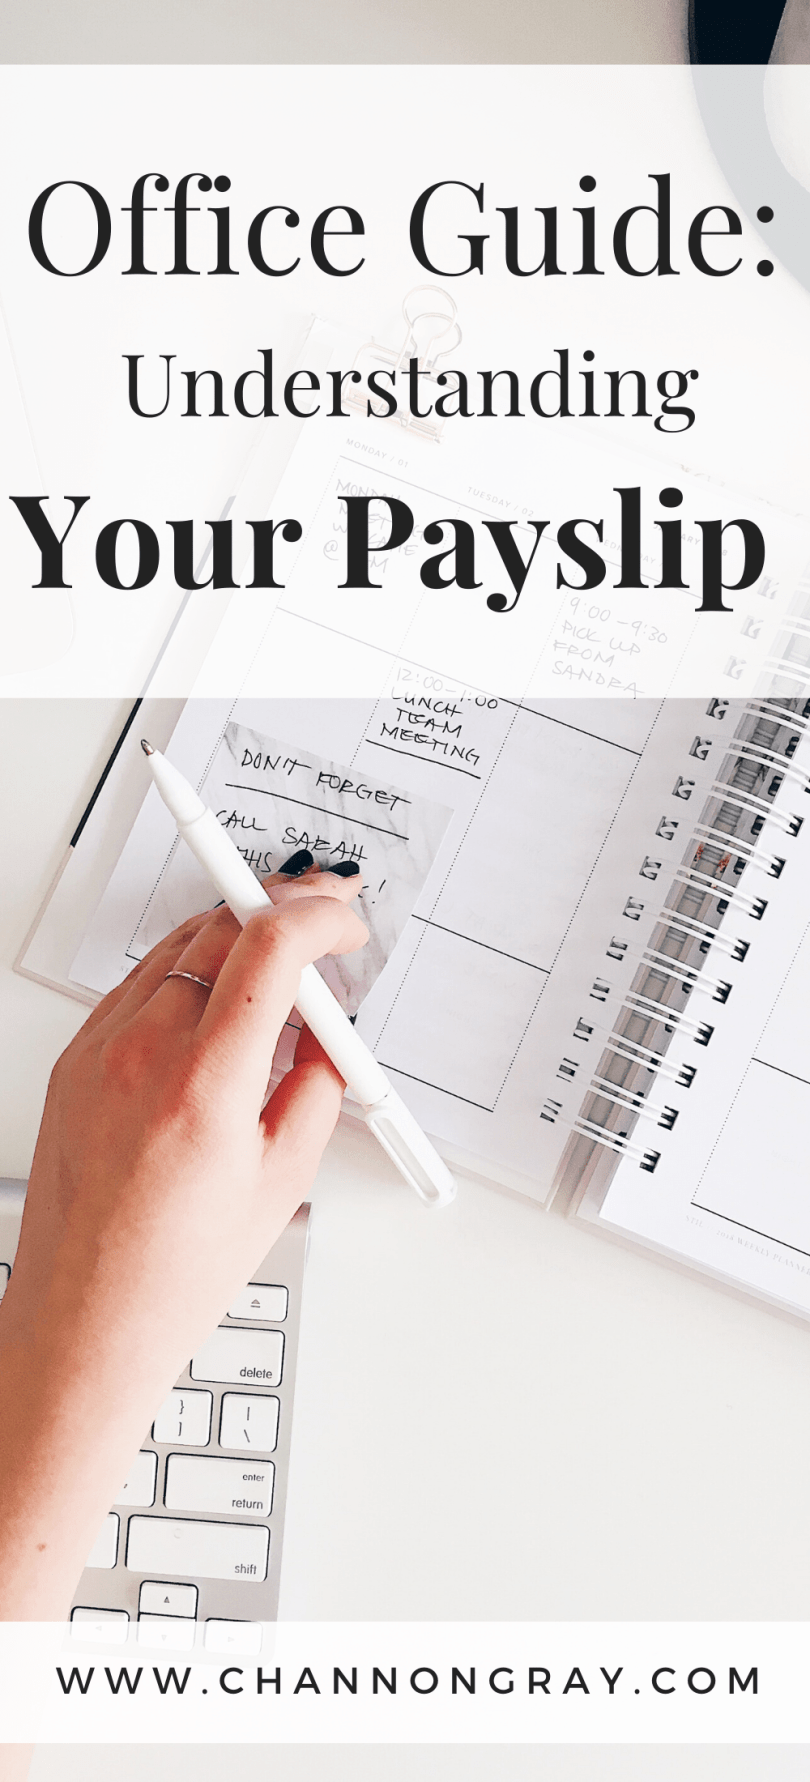 No matter if you've just received your first payslip or this is the 150th, understanding what each section means and how your pay works is incredibly important. Either in a paper or electronic format, your payslip contains a number of essential pieces of information including your national insurance number, gross and net pay, tax codes and more. In this useful guide, we take you through what each section means for you. - www.channongray.com // heythereChannon